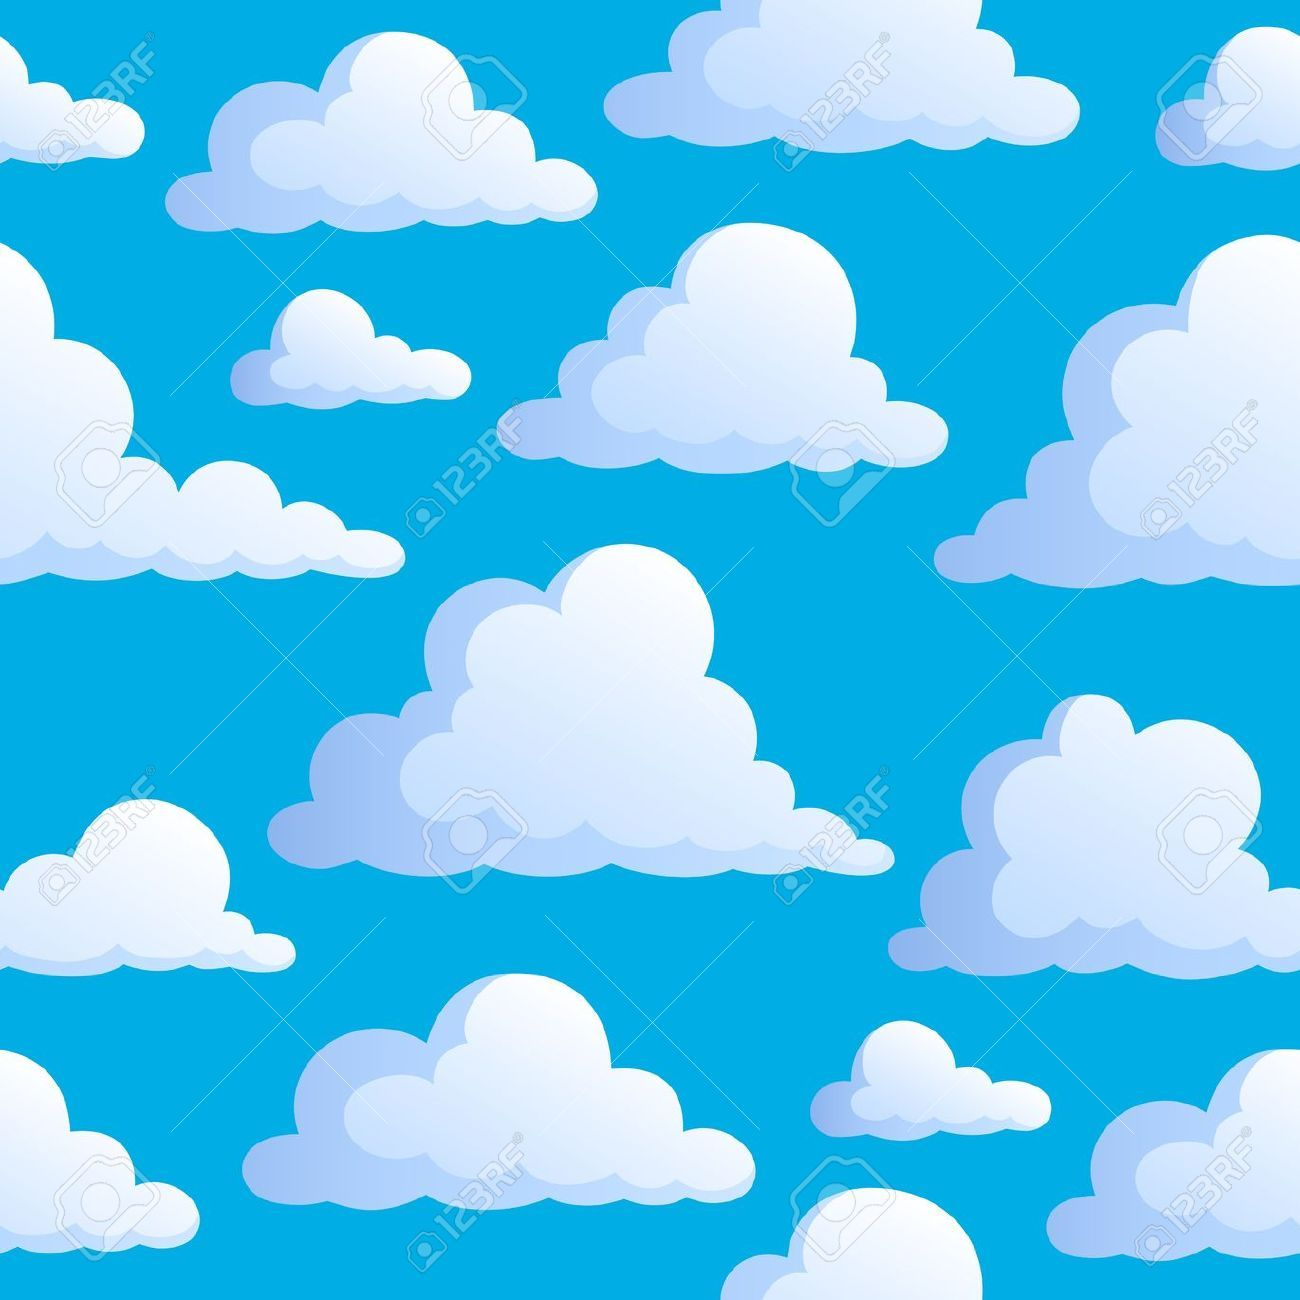 Cloudy clipart cloudy day. Clip art google search